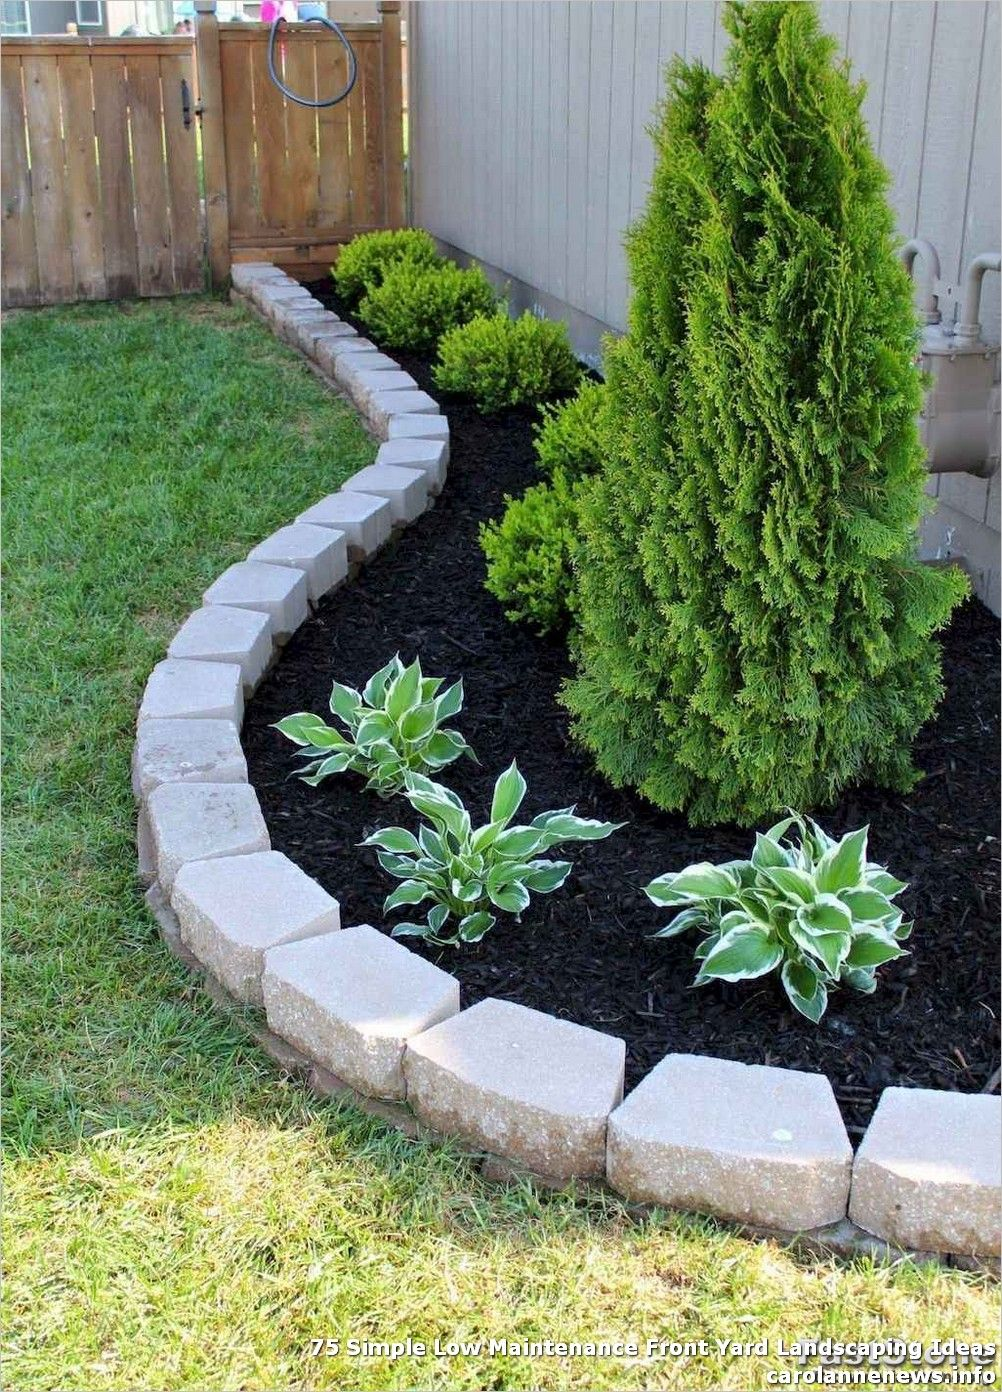 75 Simple Low Maintenance Front Yard Landscaping Ideas Low